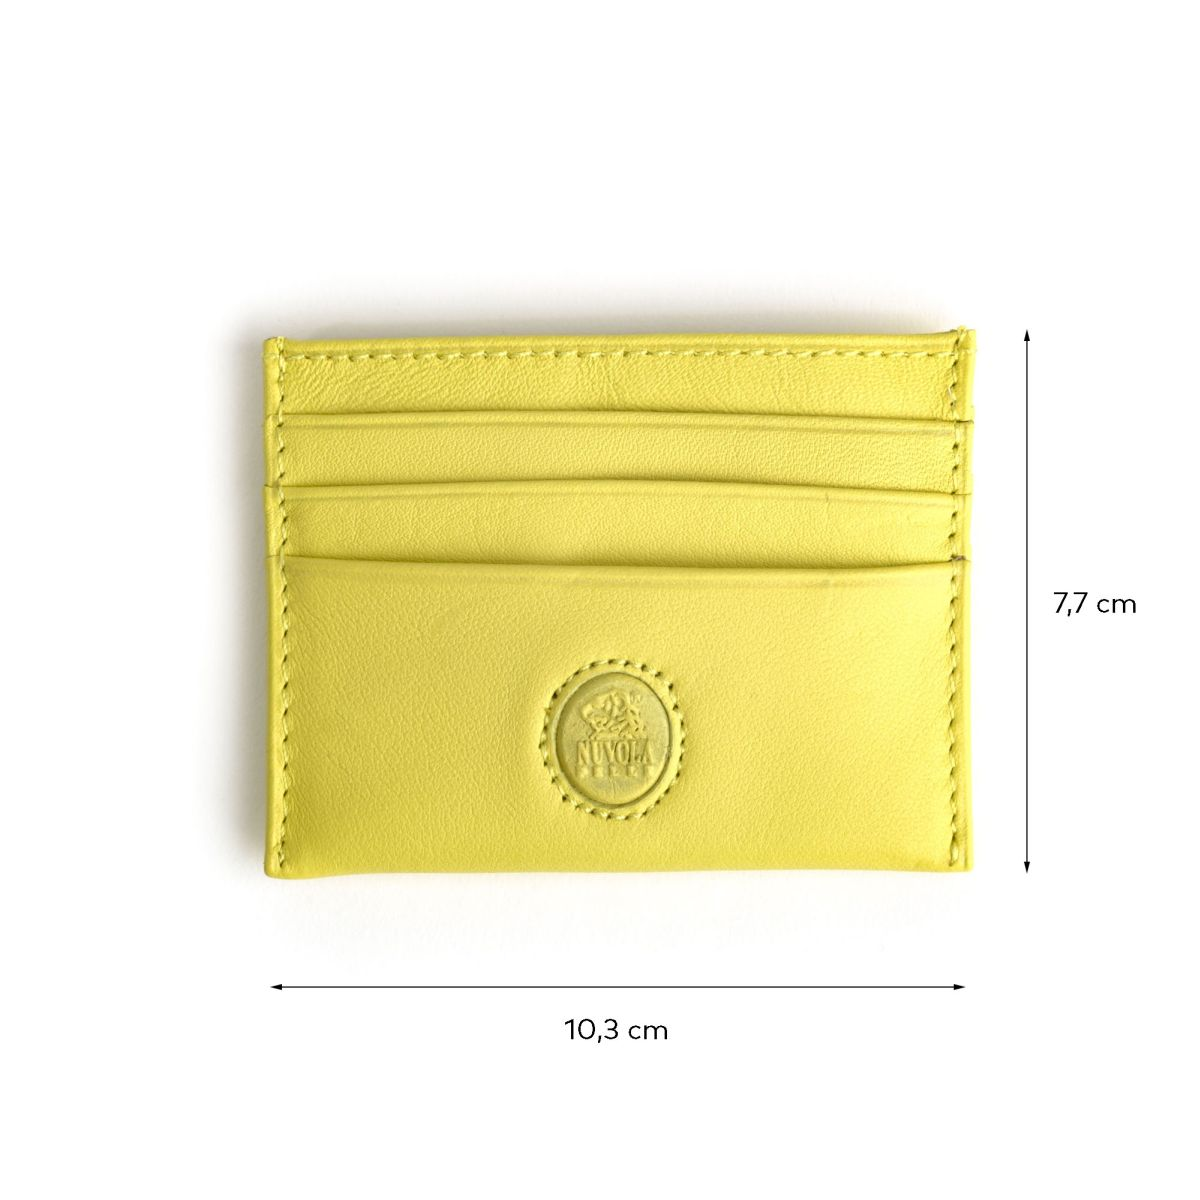 NUVOLA PELLE Minimalist leather credit card wallet - Lime